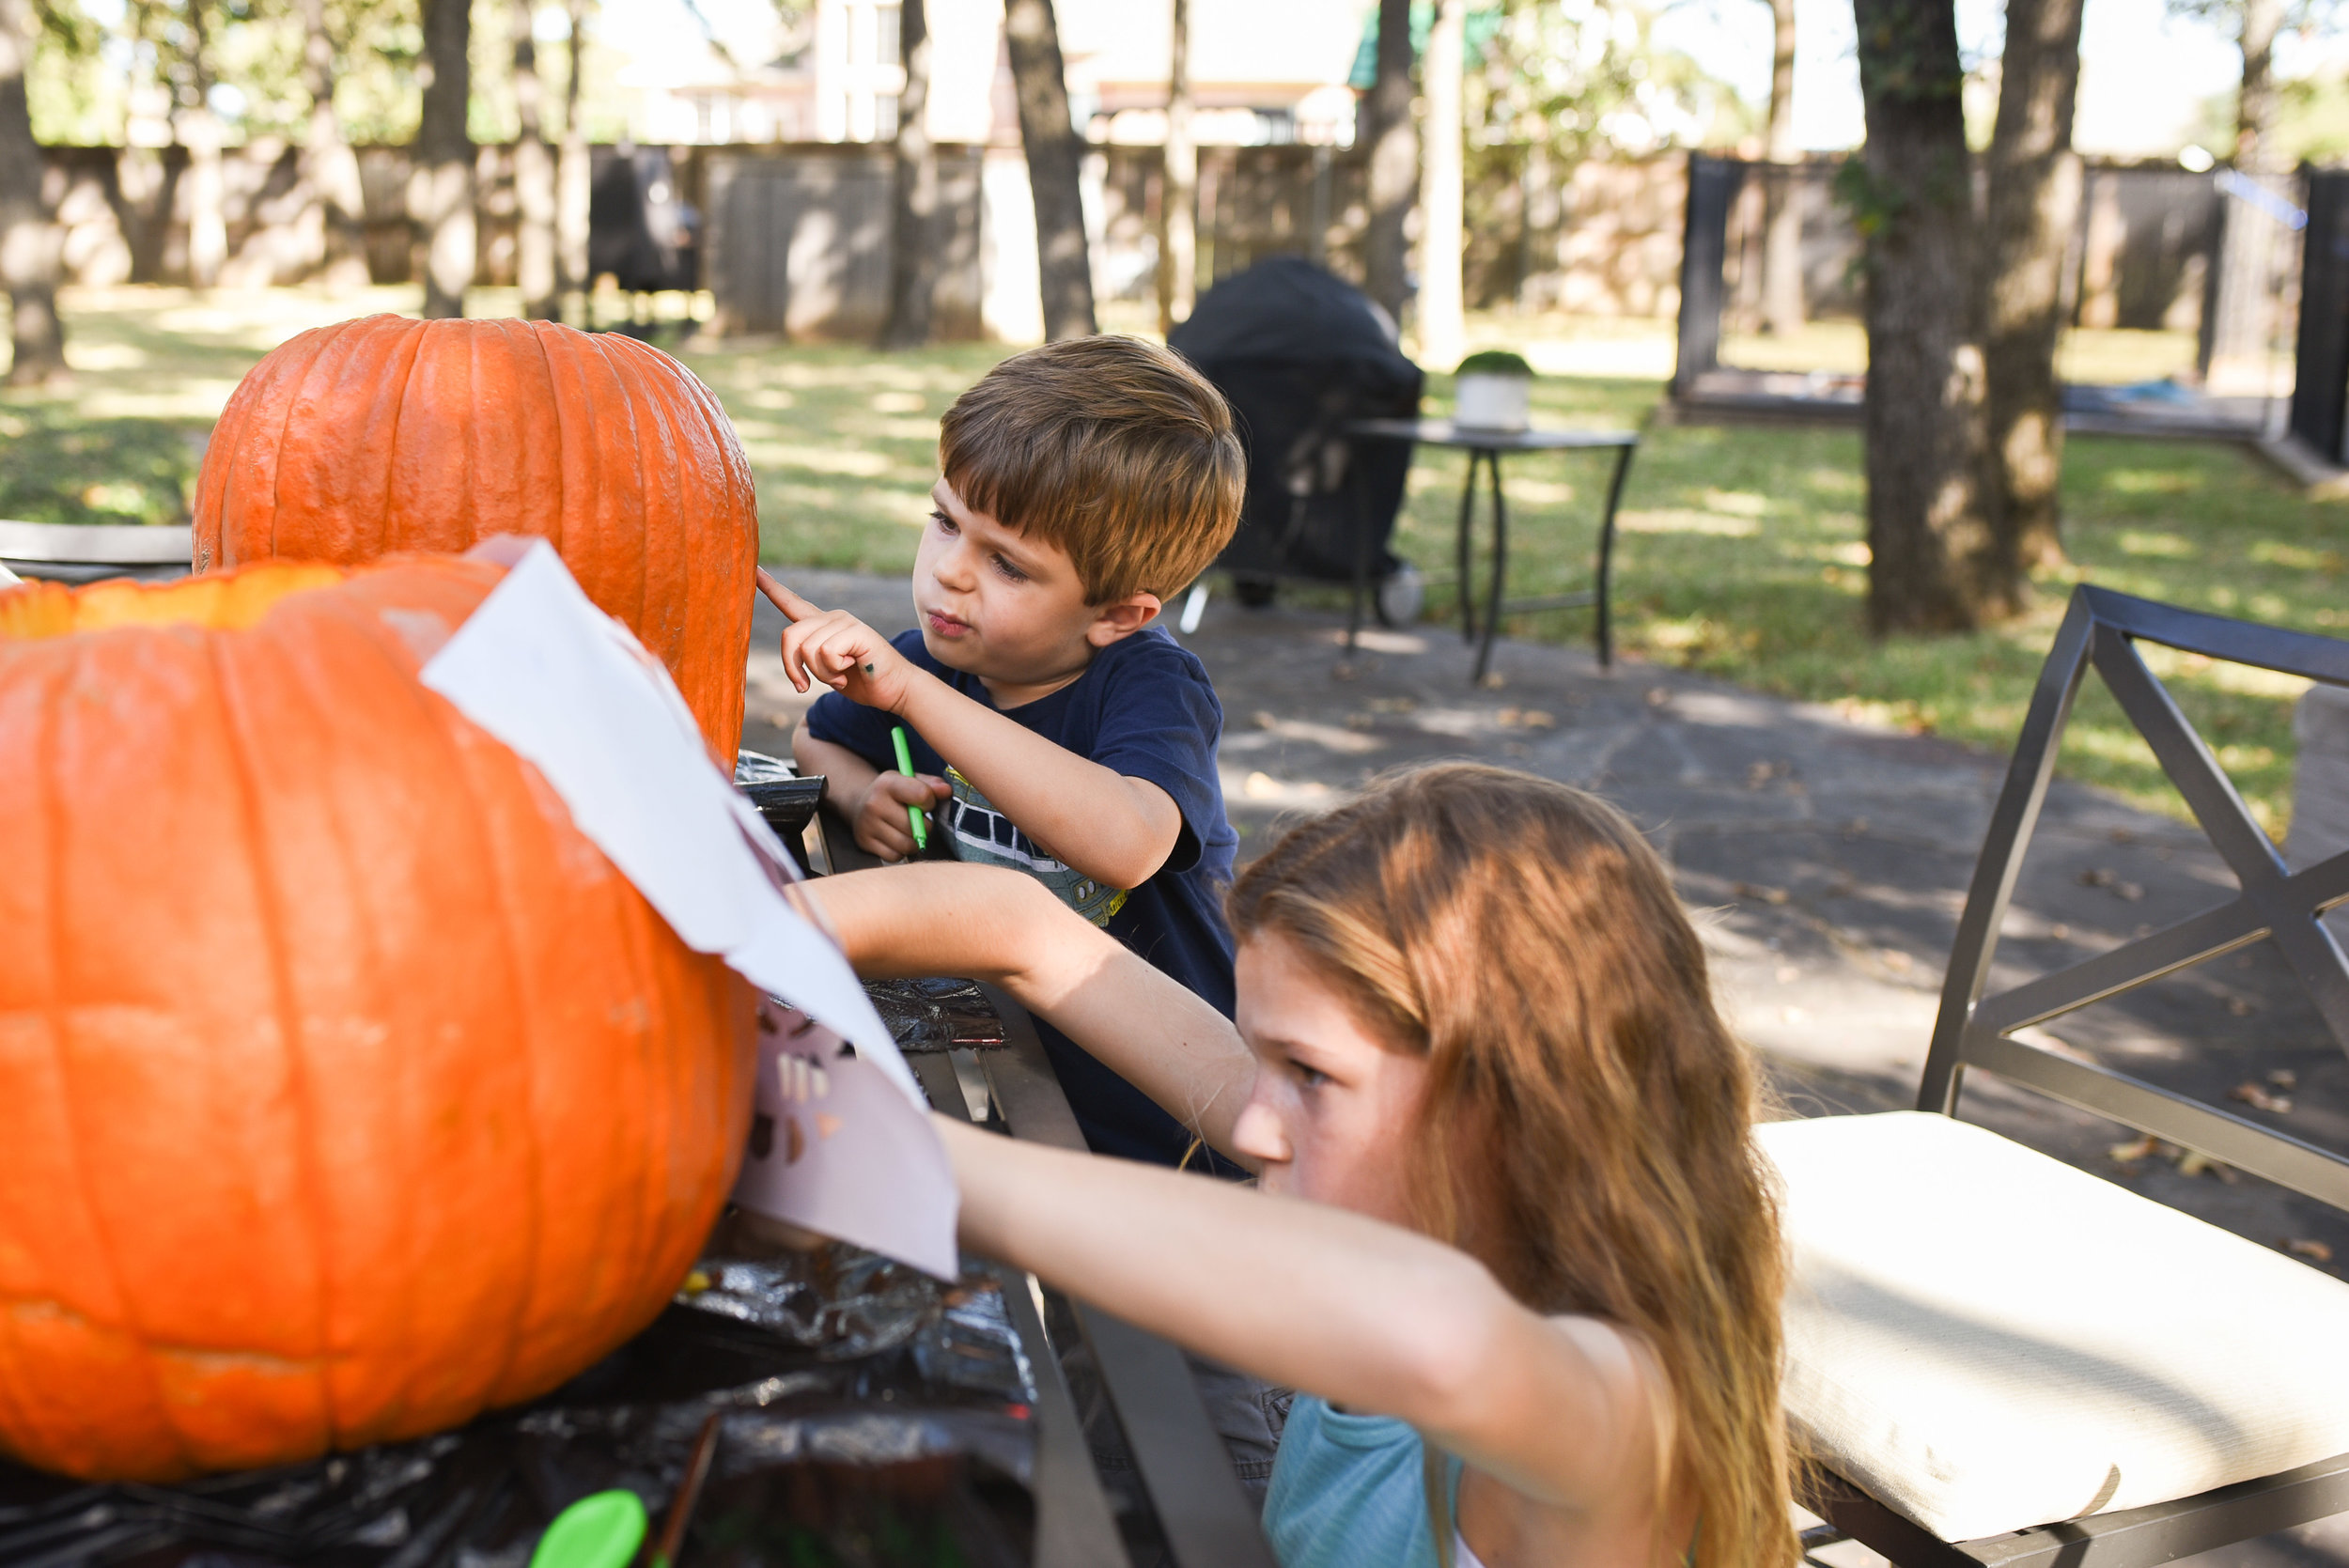 Since we celebrated Halloween on a crazy busy Saturday, carving our pumpkins waited until Sunday. Henry took his creative duties quite seriously.